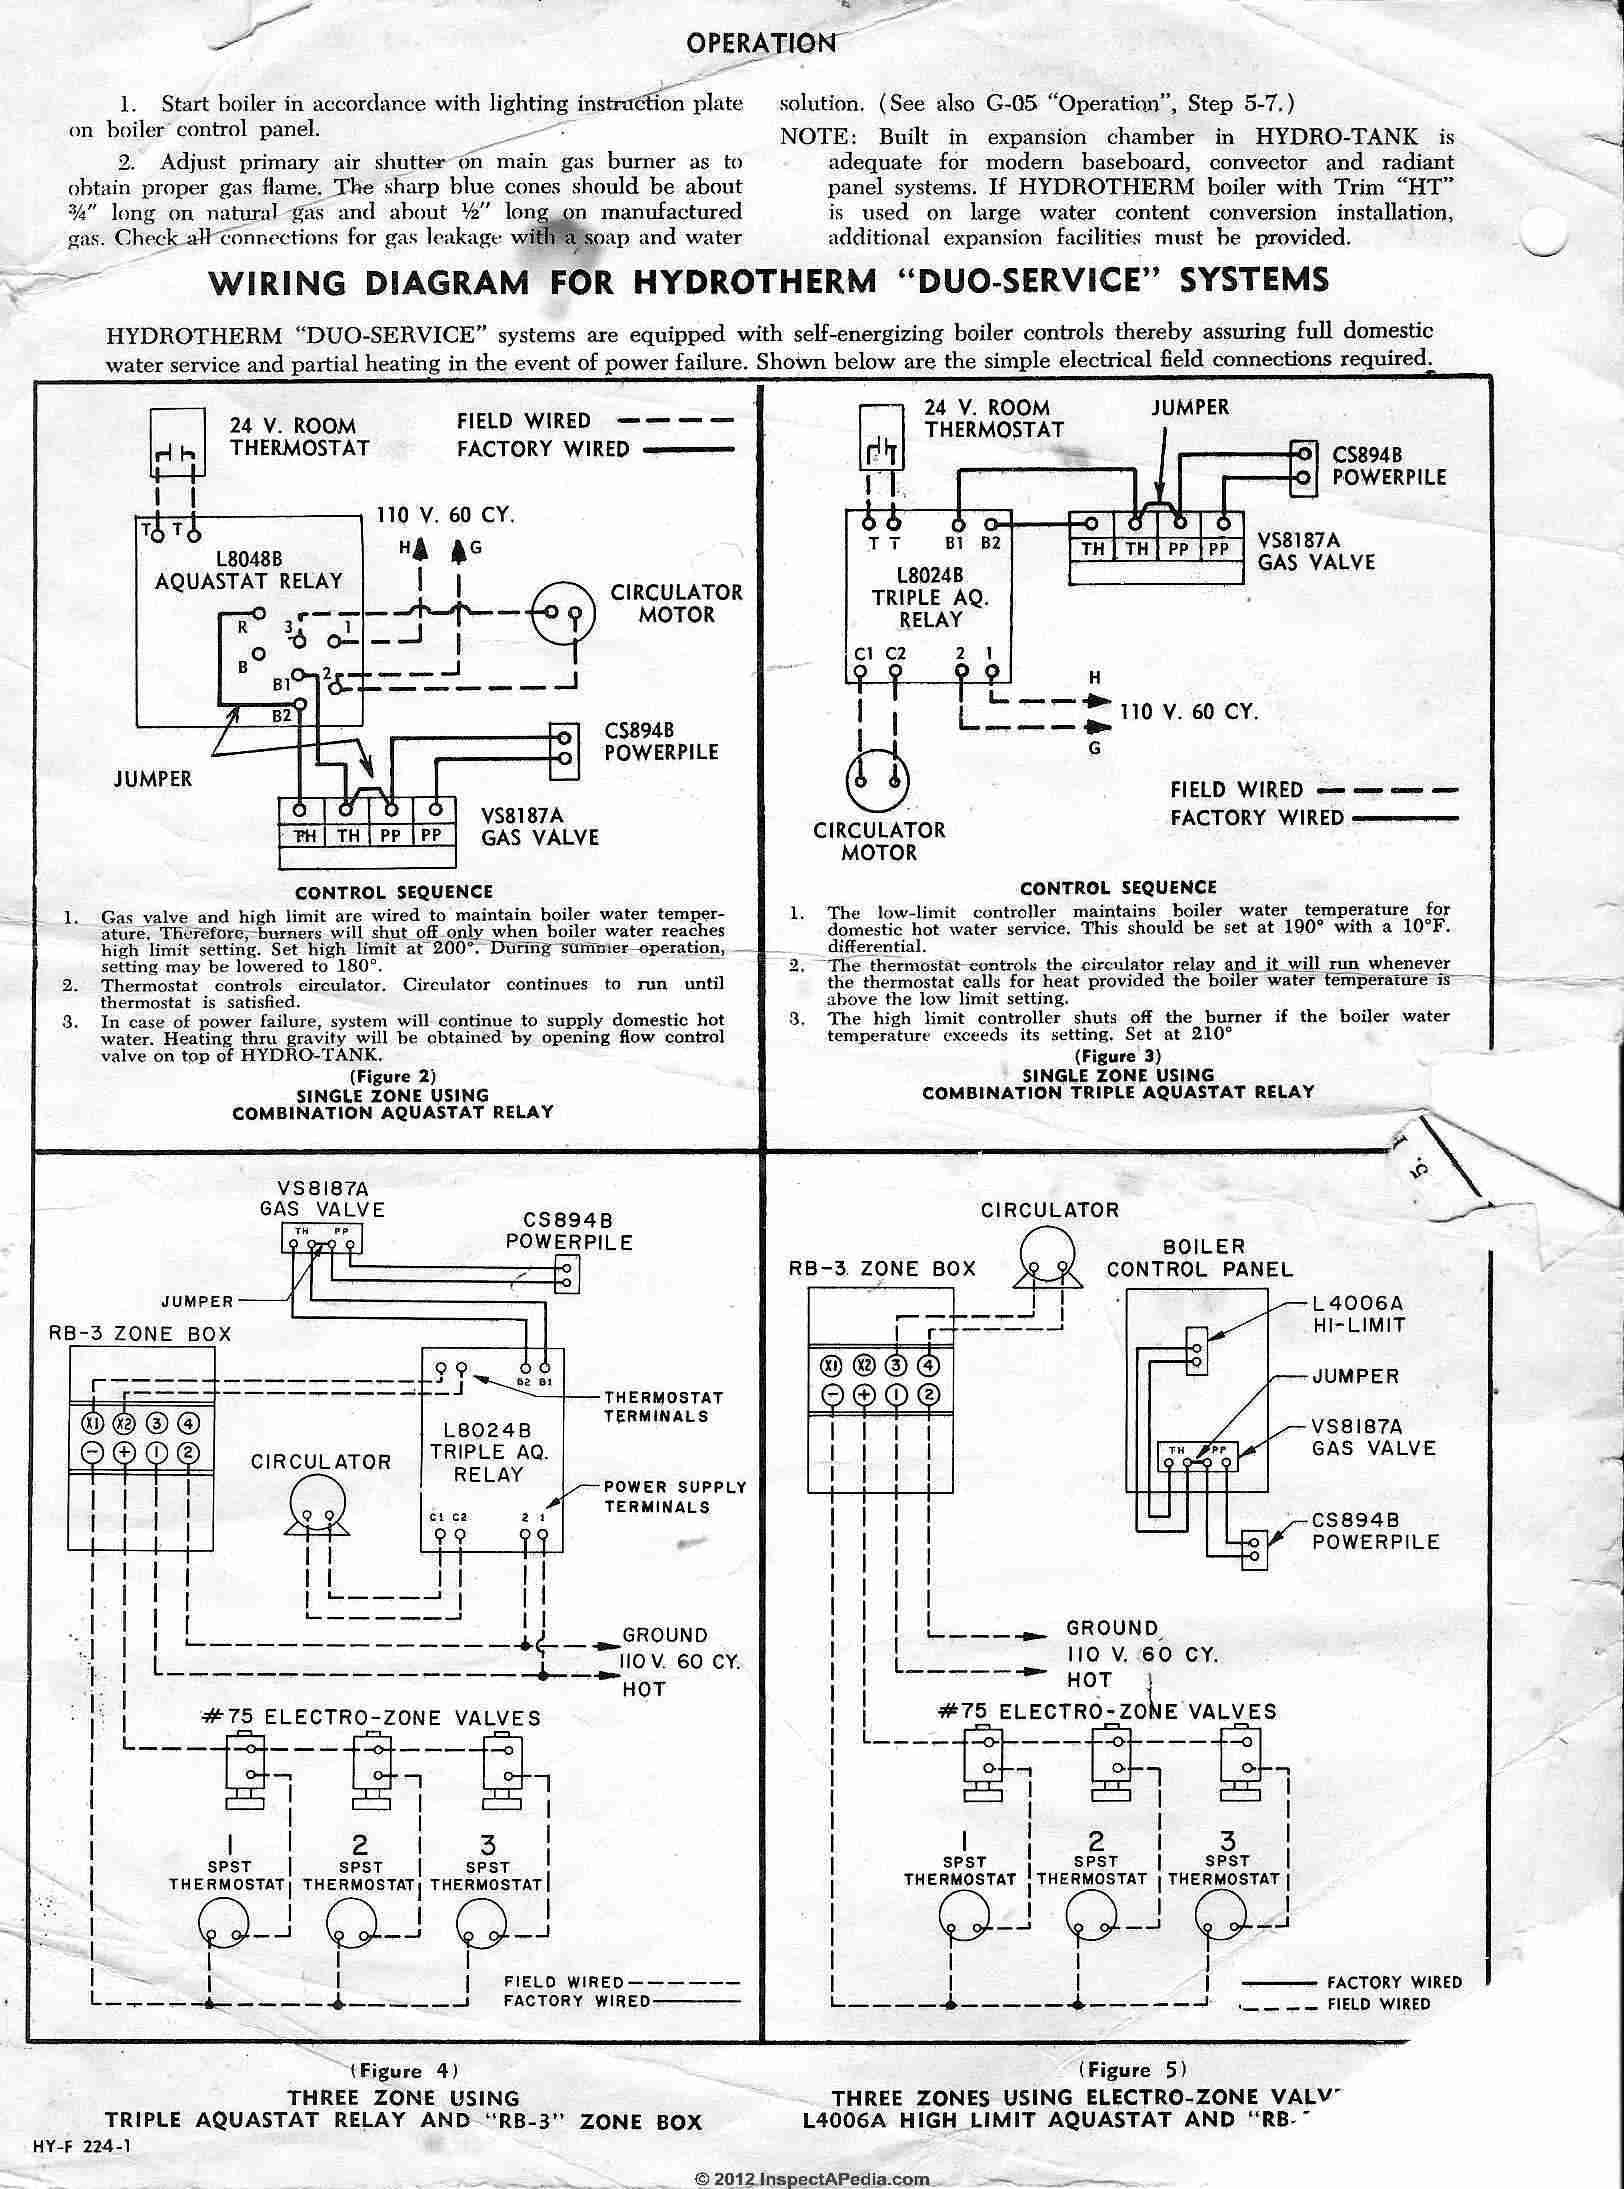 L8024B_Aquastat_0422_DJFcs heating boiler aquastat control diagnosis, troubleshooting, repair Gas Furnace Wiring Diagram at suagrazia.org